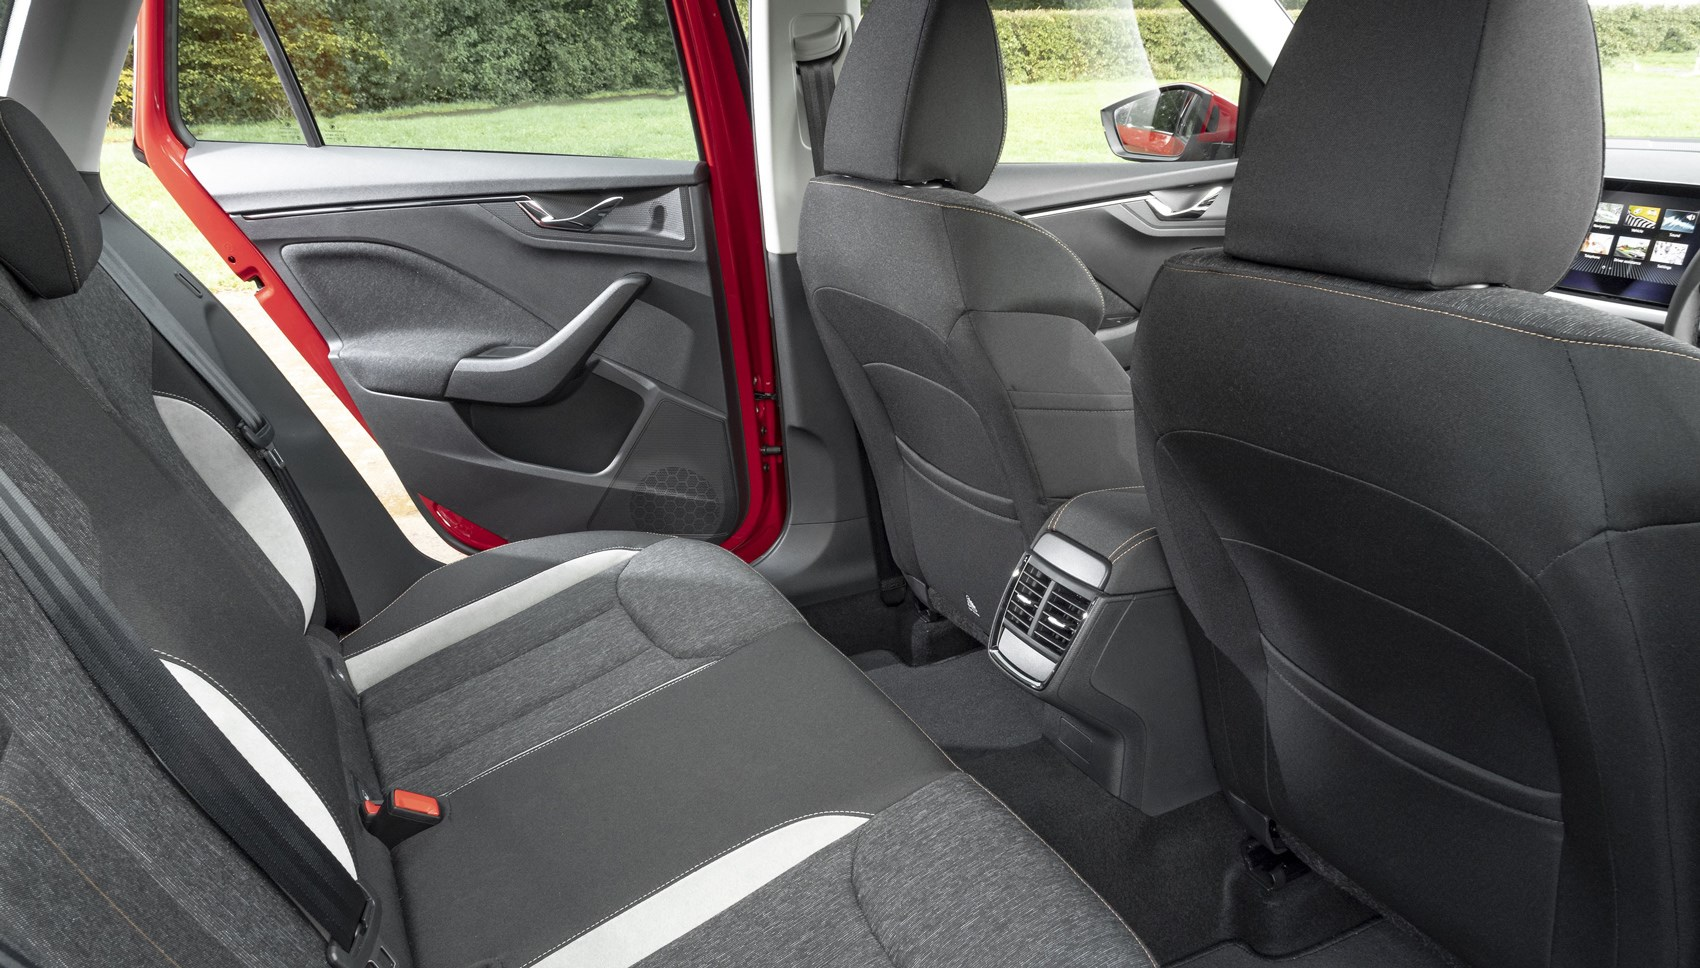 Skoda Kamiq rear seats